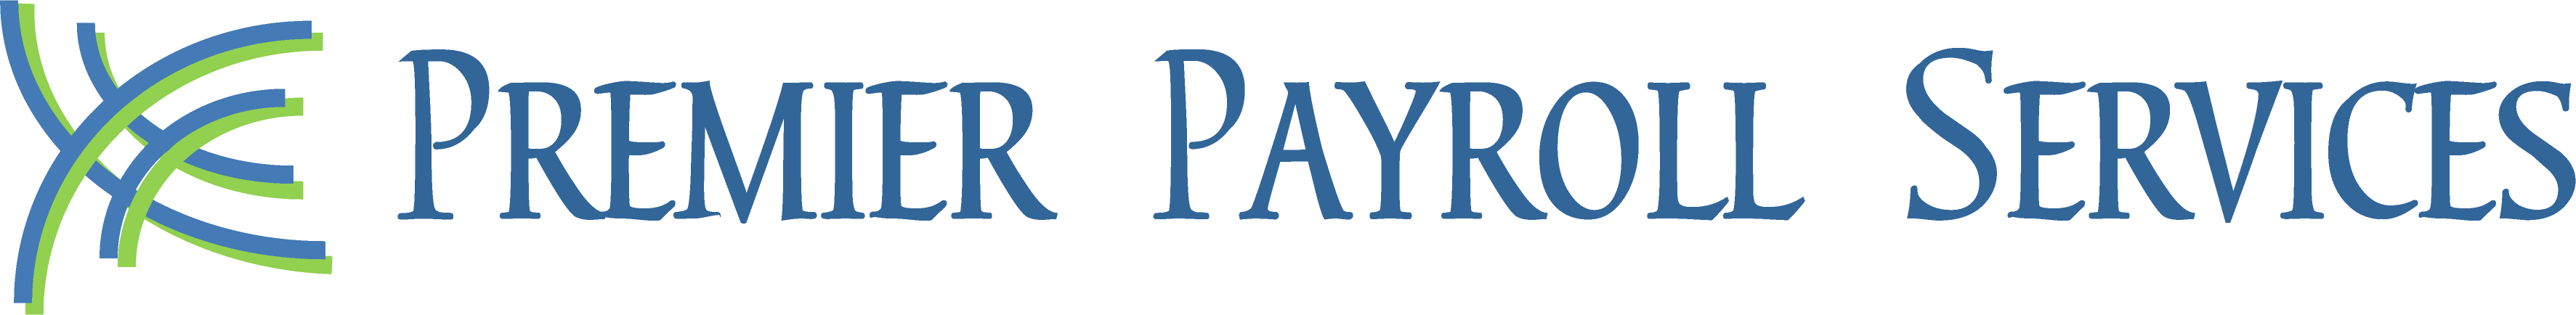 premier payroll services logo